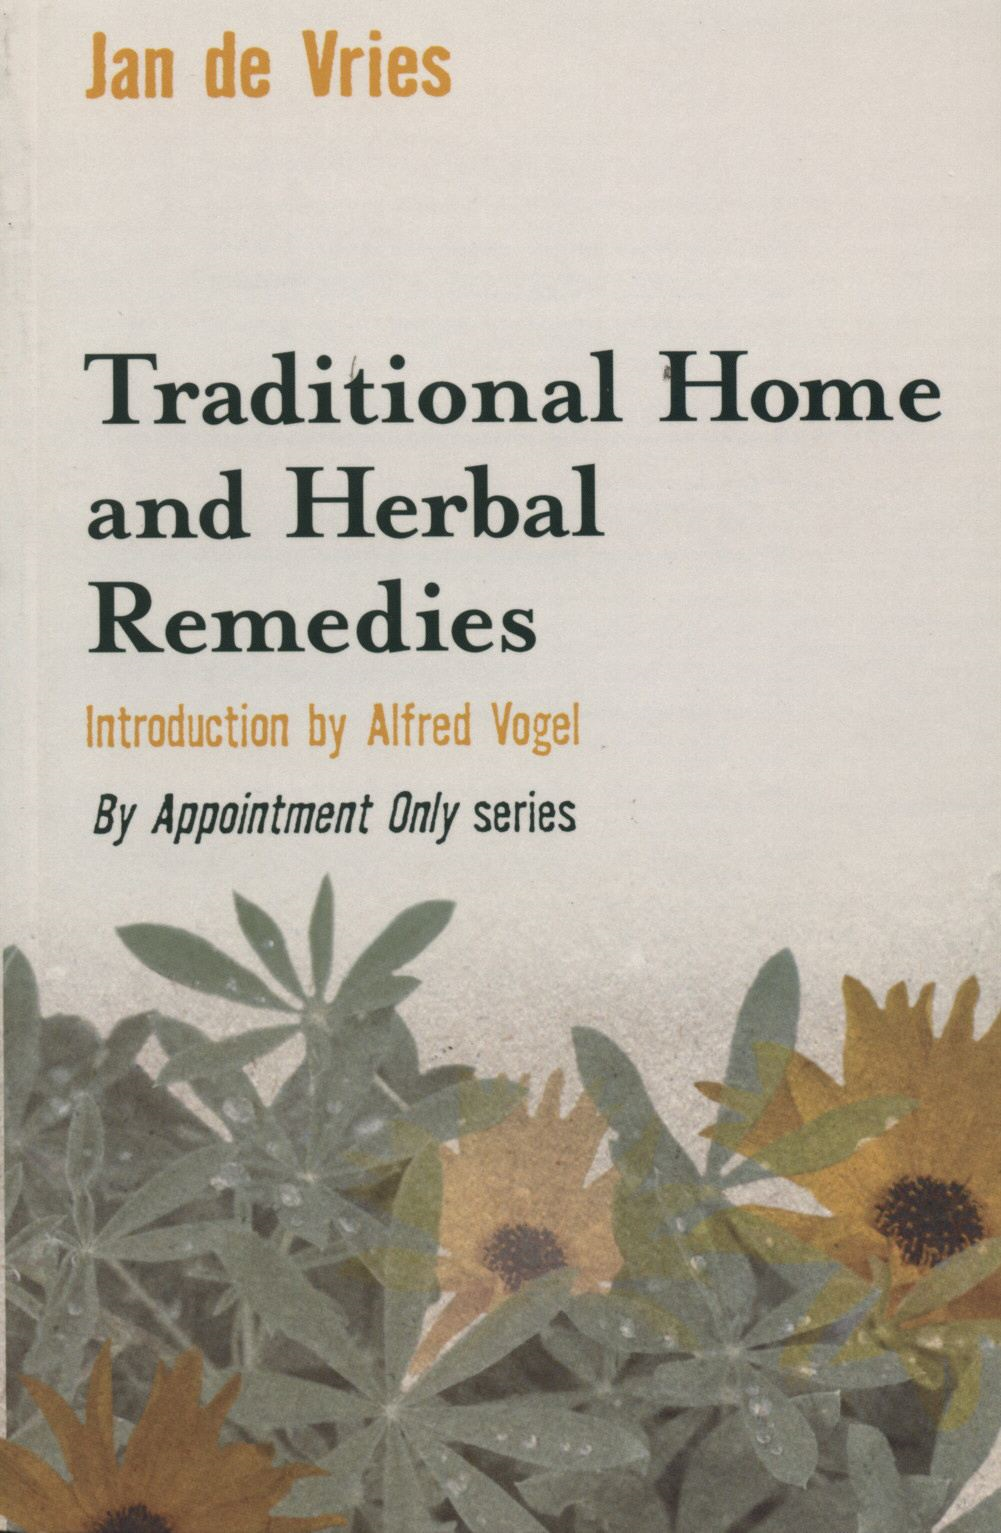 Traditional Home and Herbal Remedies